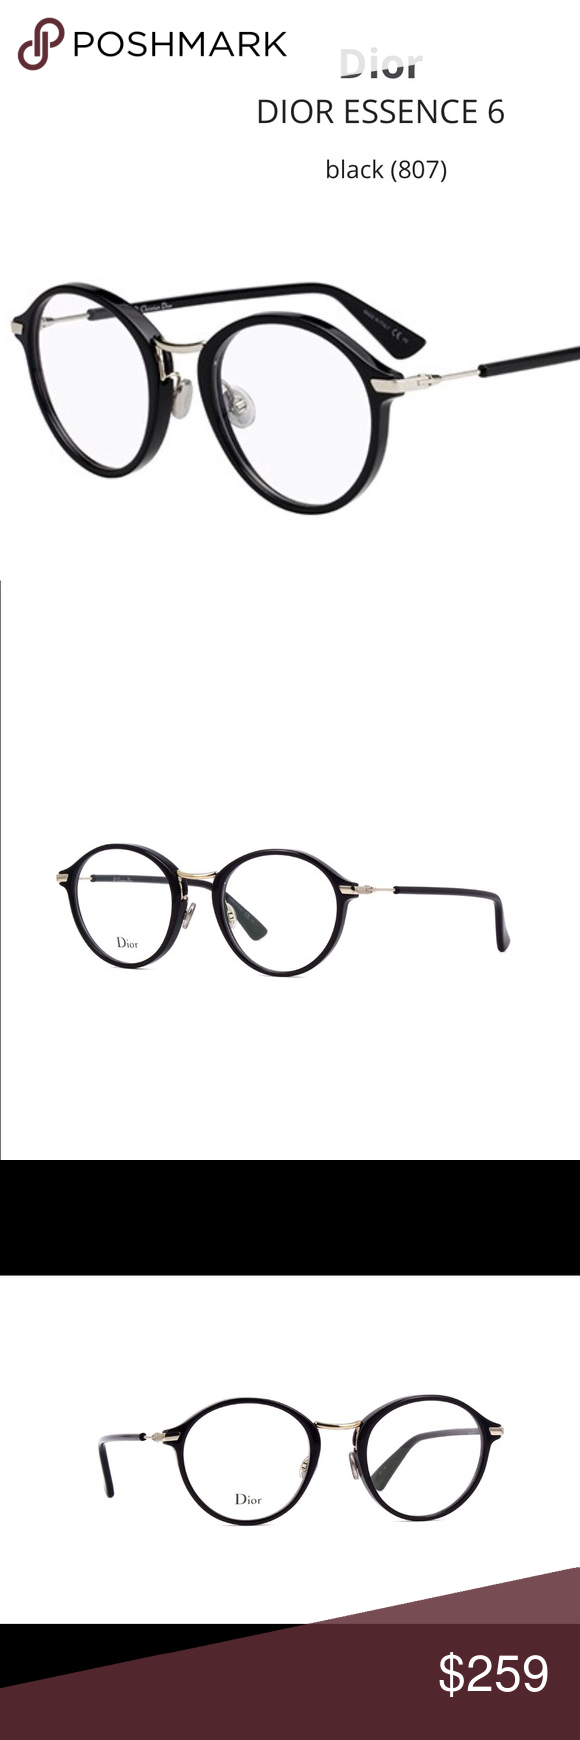 68adcf0c4836 Dior Eyeglasses Model Dioressence 6 NEW! Brand New Case and Cleaning Cloth  Included 💯% Authentic Christian Dior Accessories Glasses